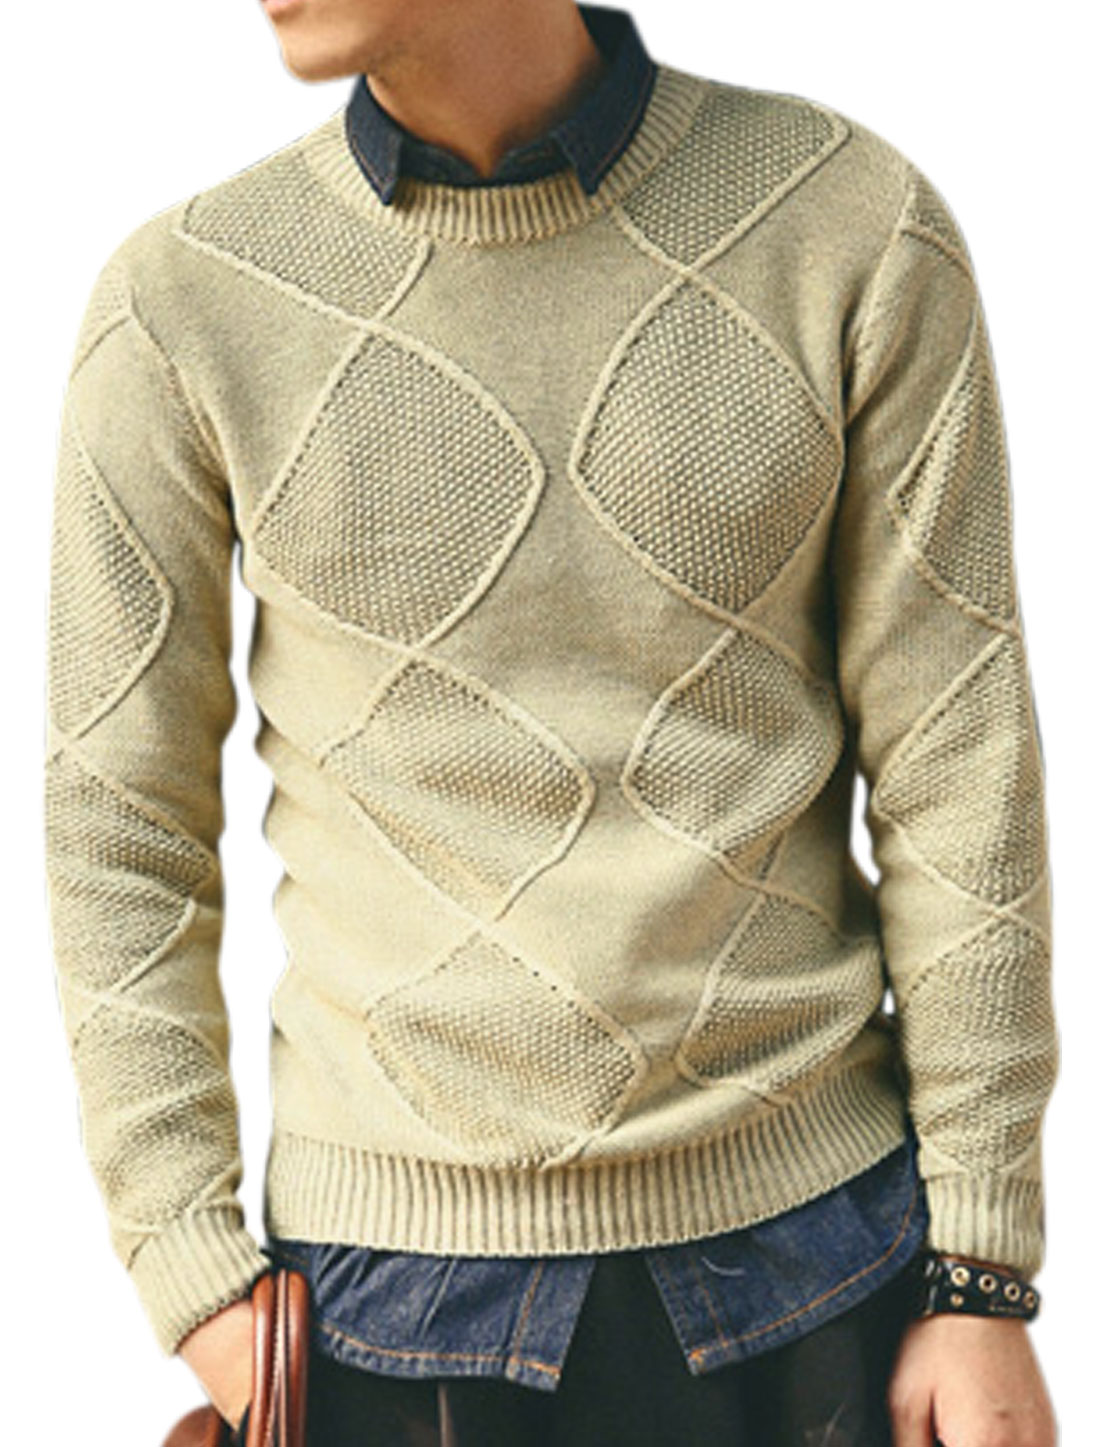 Men Crew Neck Argyle Design Ribbing Trim Fashion Sweater Beige M